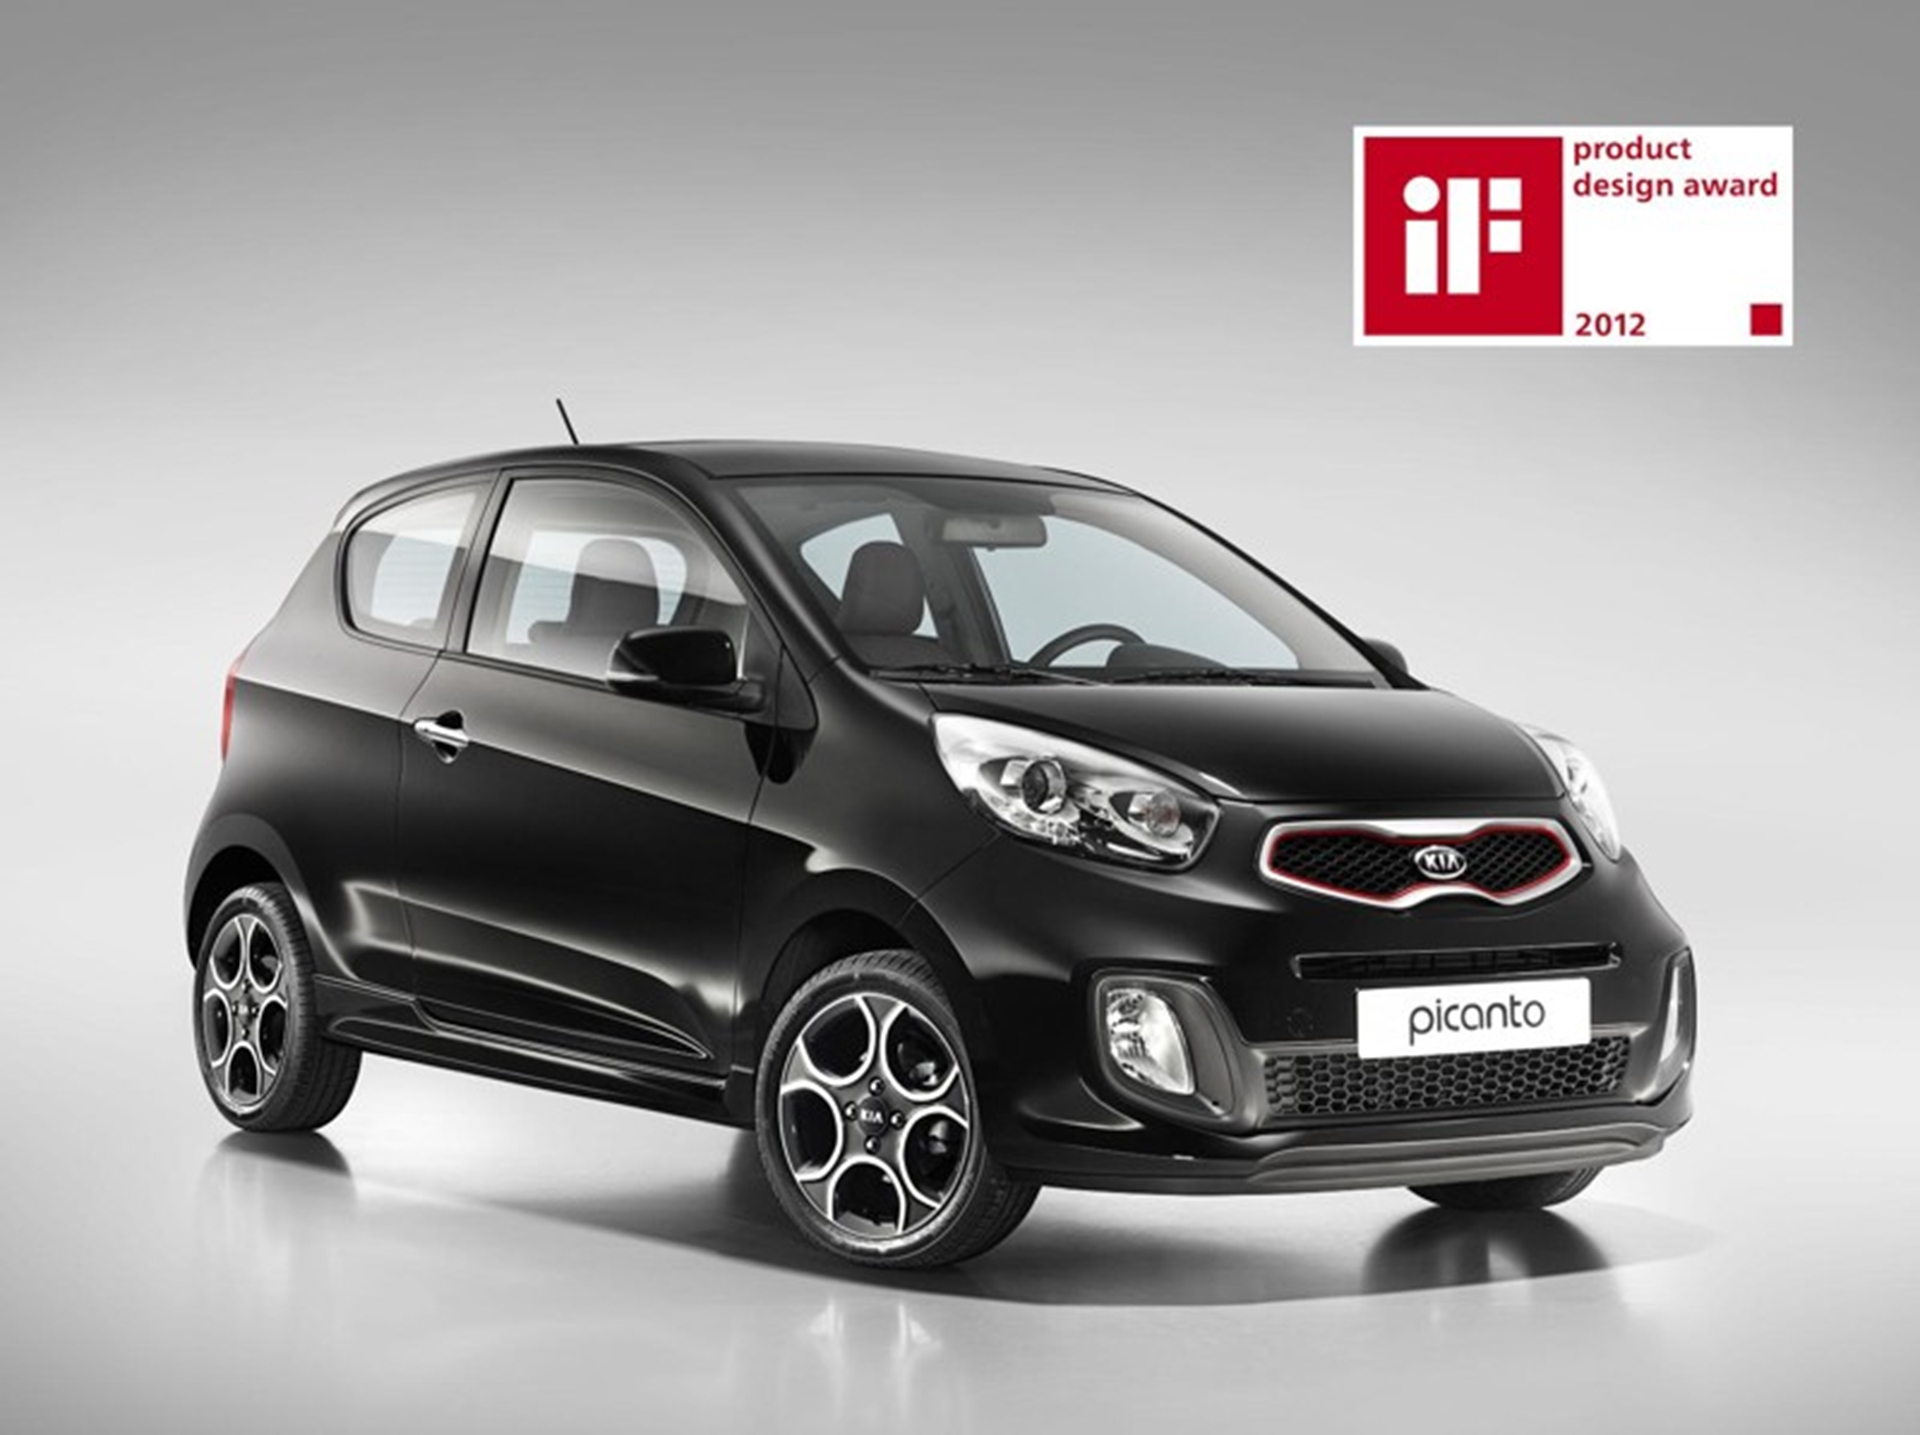 kia-design-award-2011